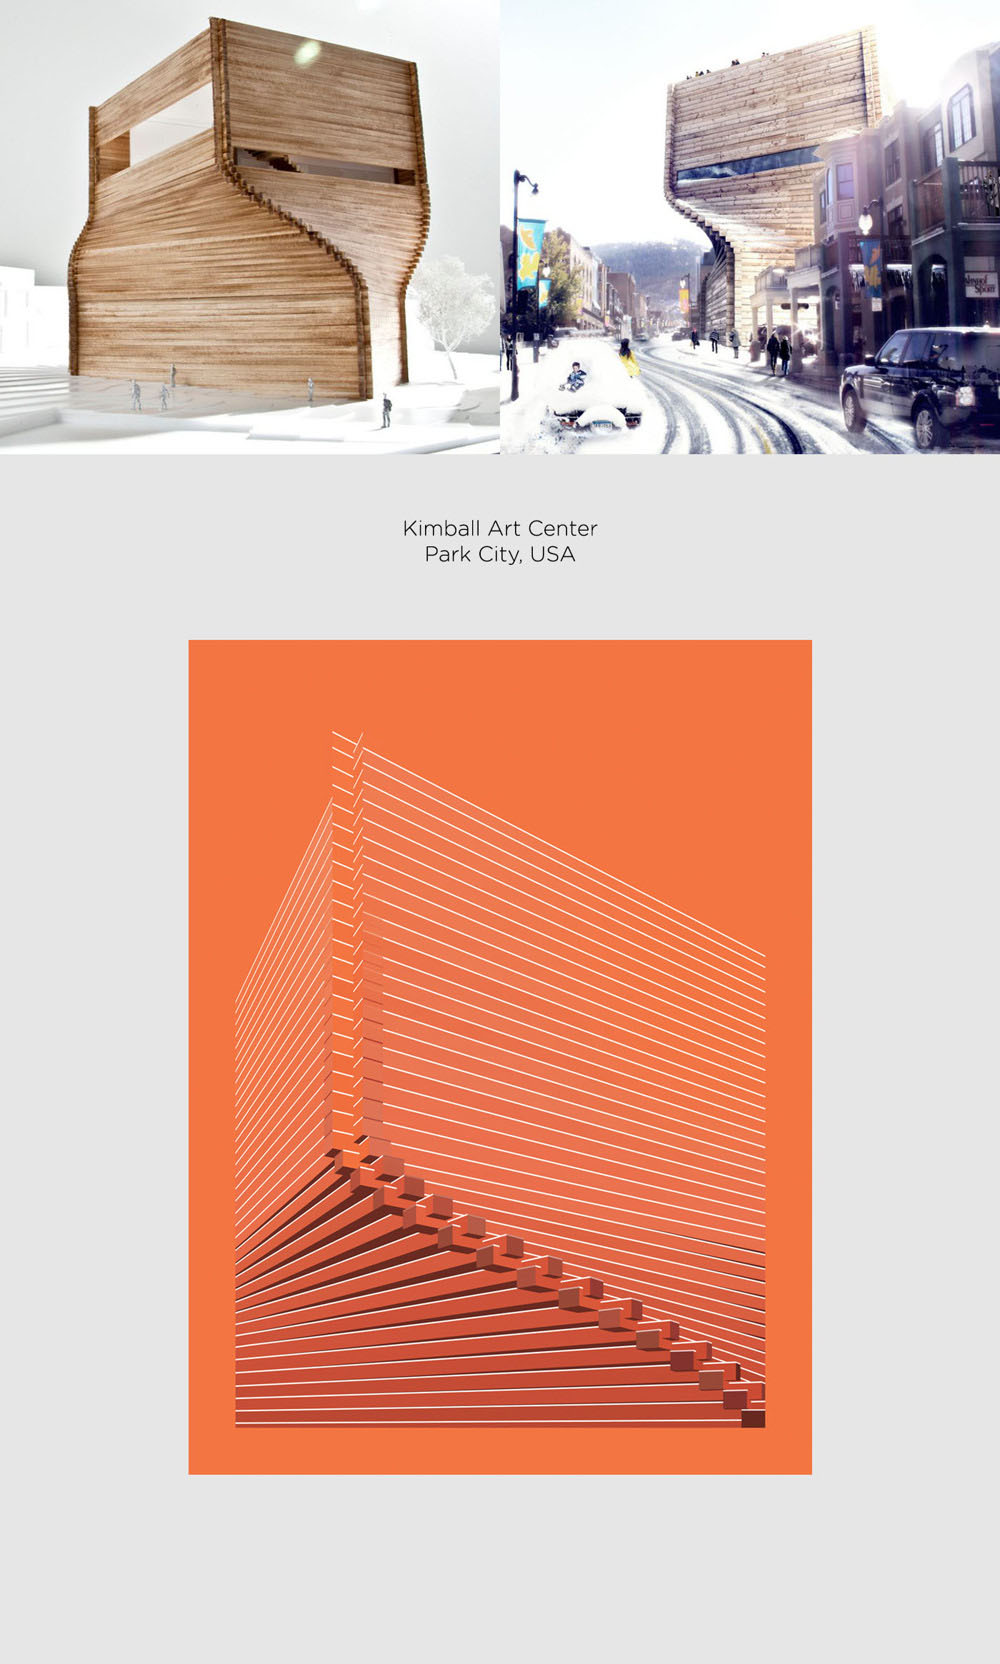 Kimball Art Center by Bjarke Ingles Group (BIG) poster